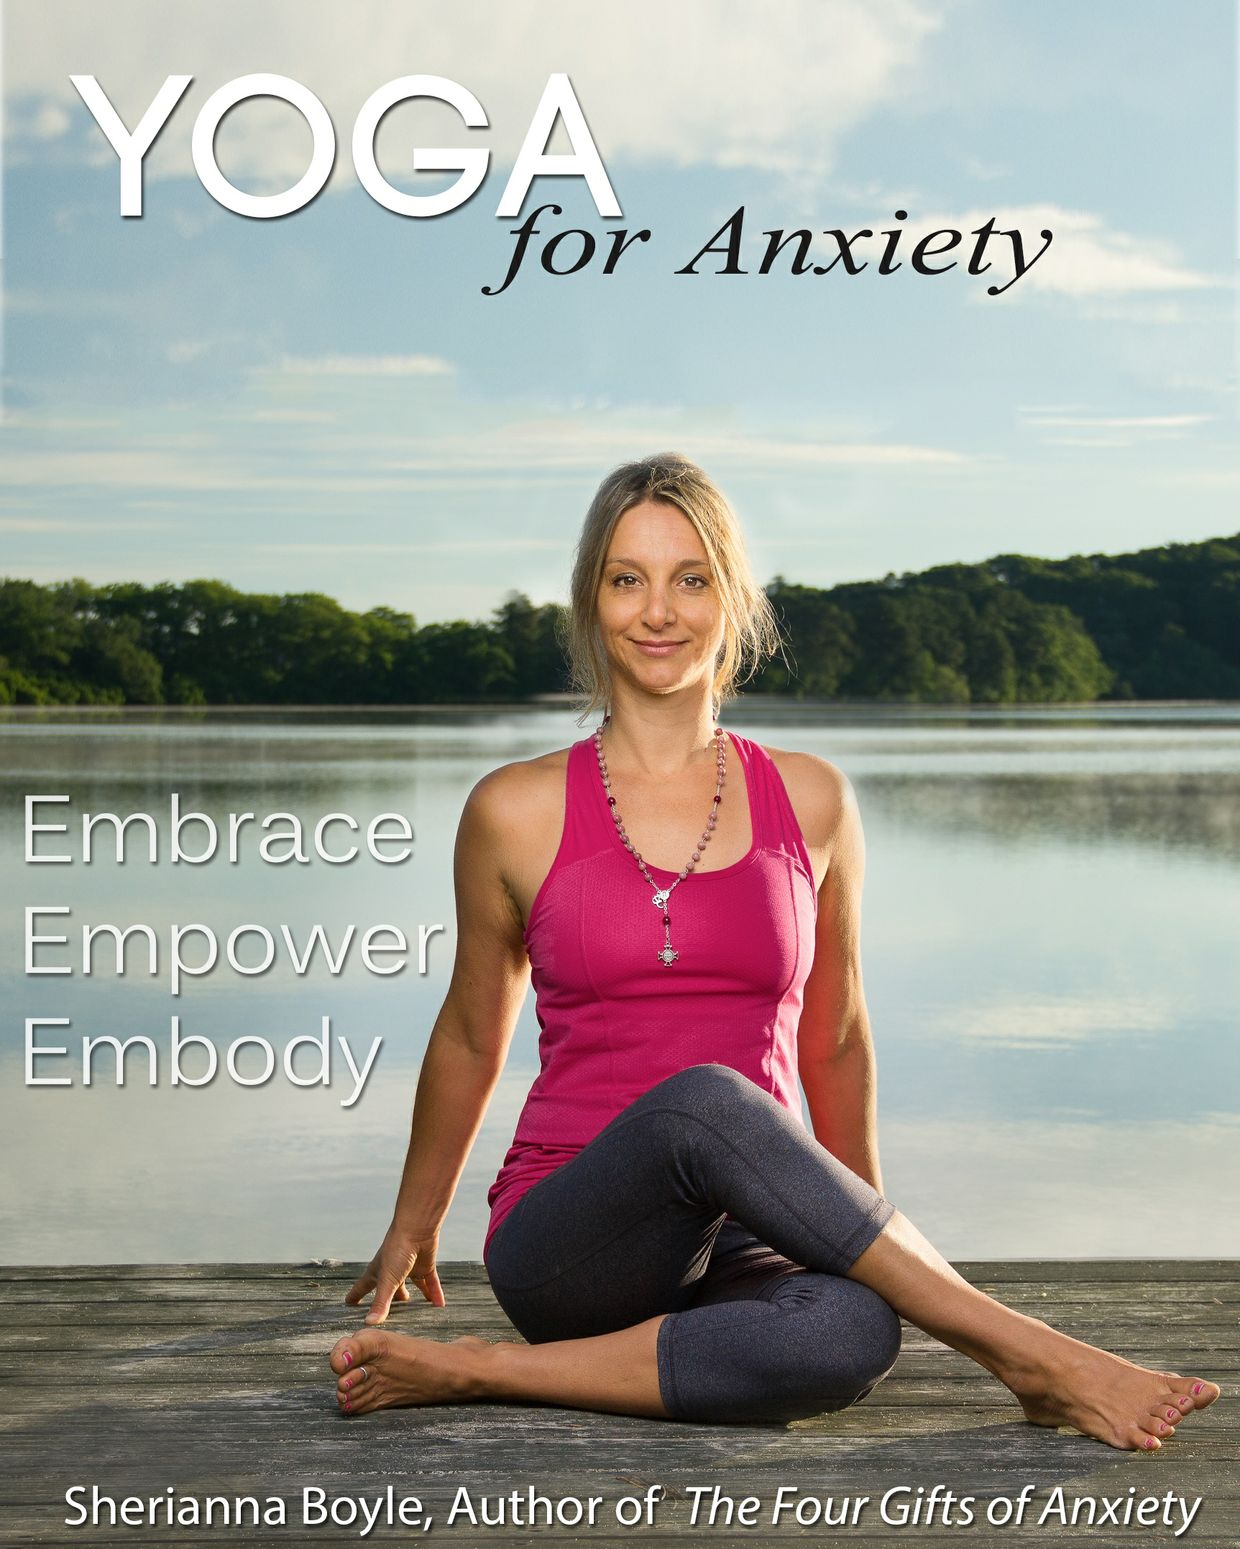 Yoga for Anxiety by Sherianna Boyle